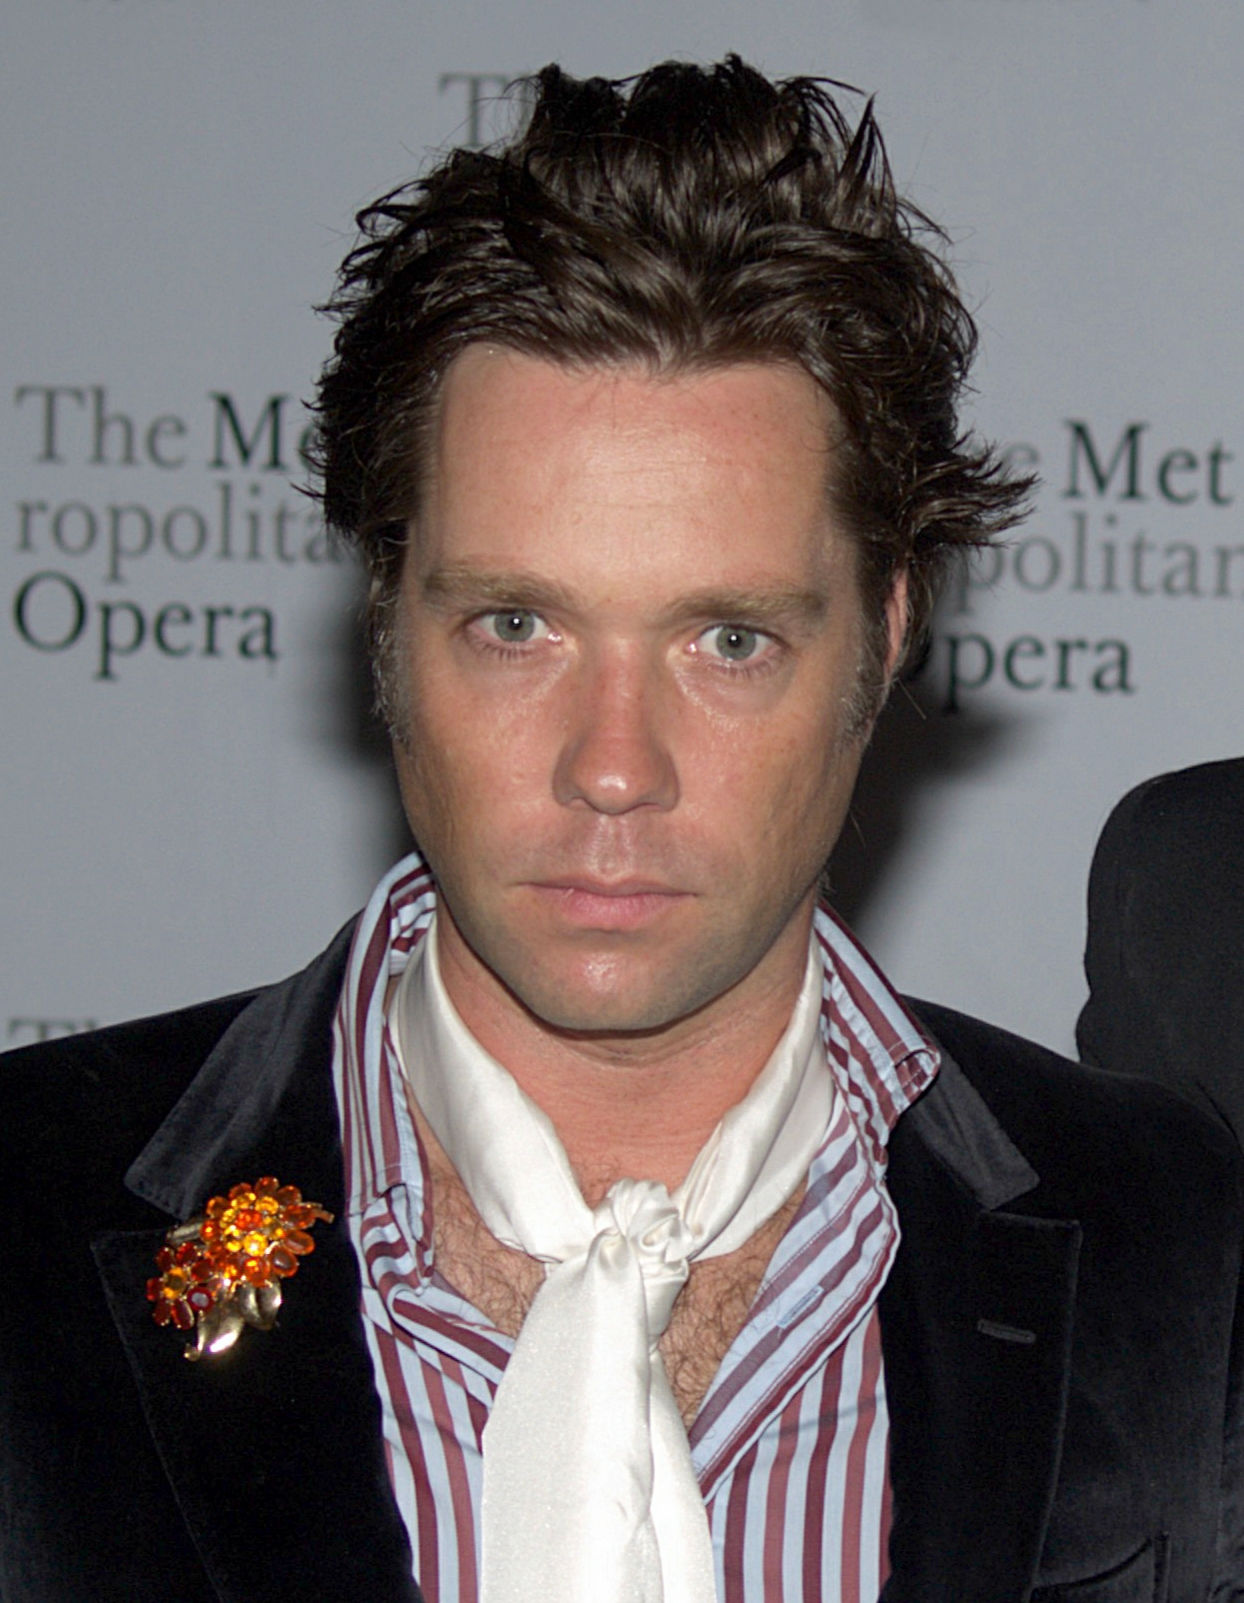 Photo of Rufus Wainwright: American-Canadian singer-songwriter and composer